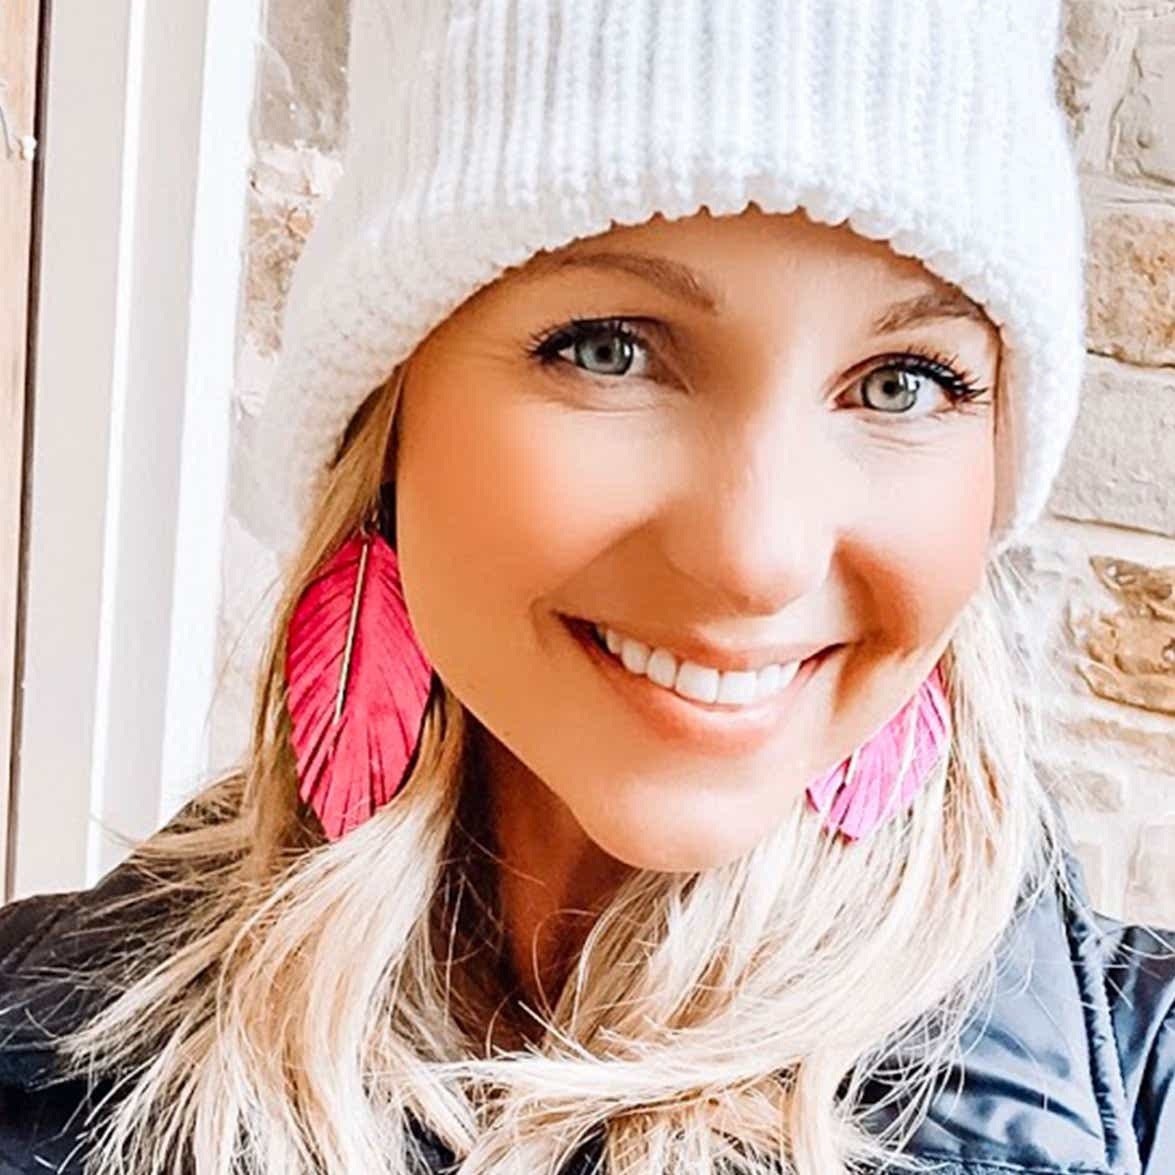 Amanda Nall selfie with pink feather earrings and a white knit cap